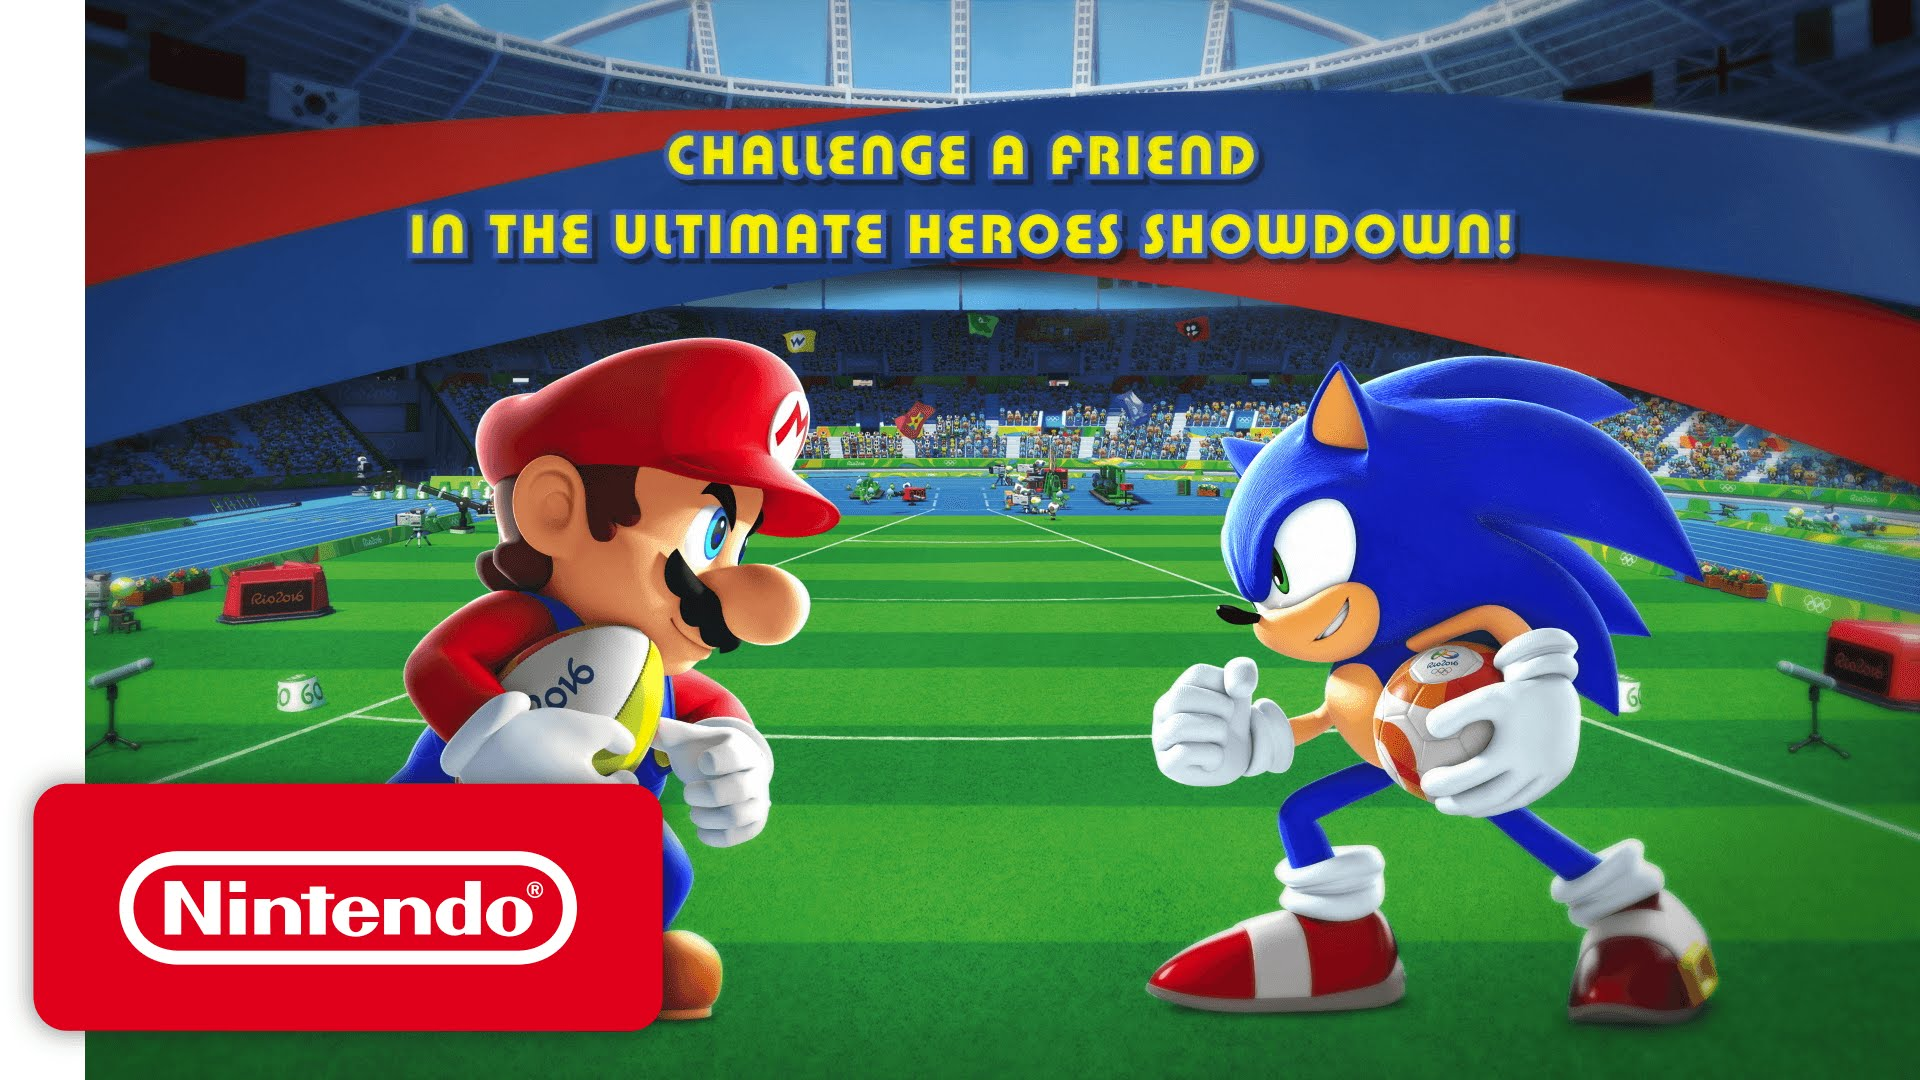 Mario & Sonic at the Rio 2016 Olympic Games - Heroes Showdown Trailer